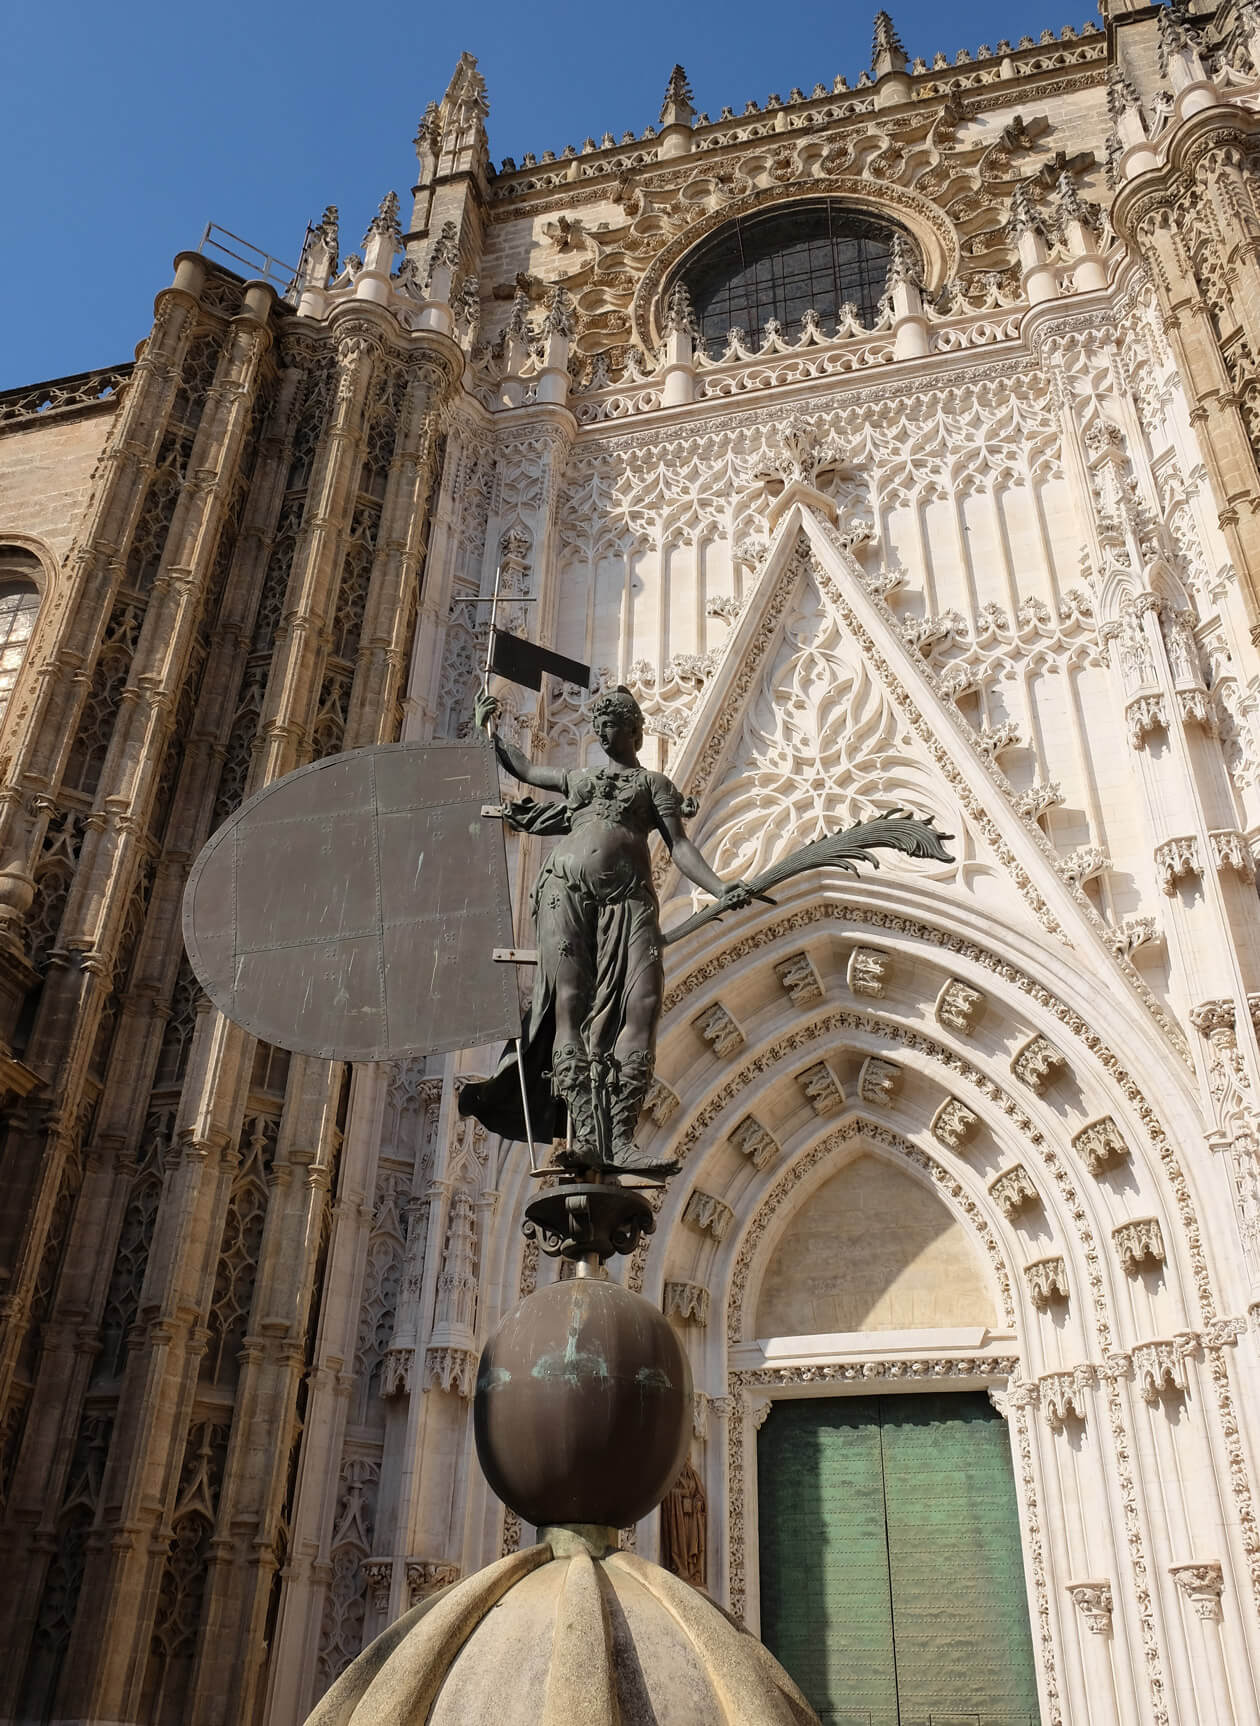 In front of the main visitor entrance you can see a replica of La Giralda's weathervane